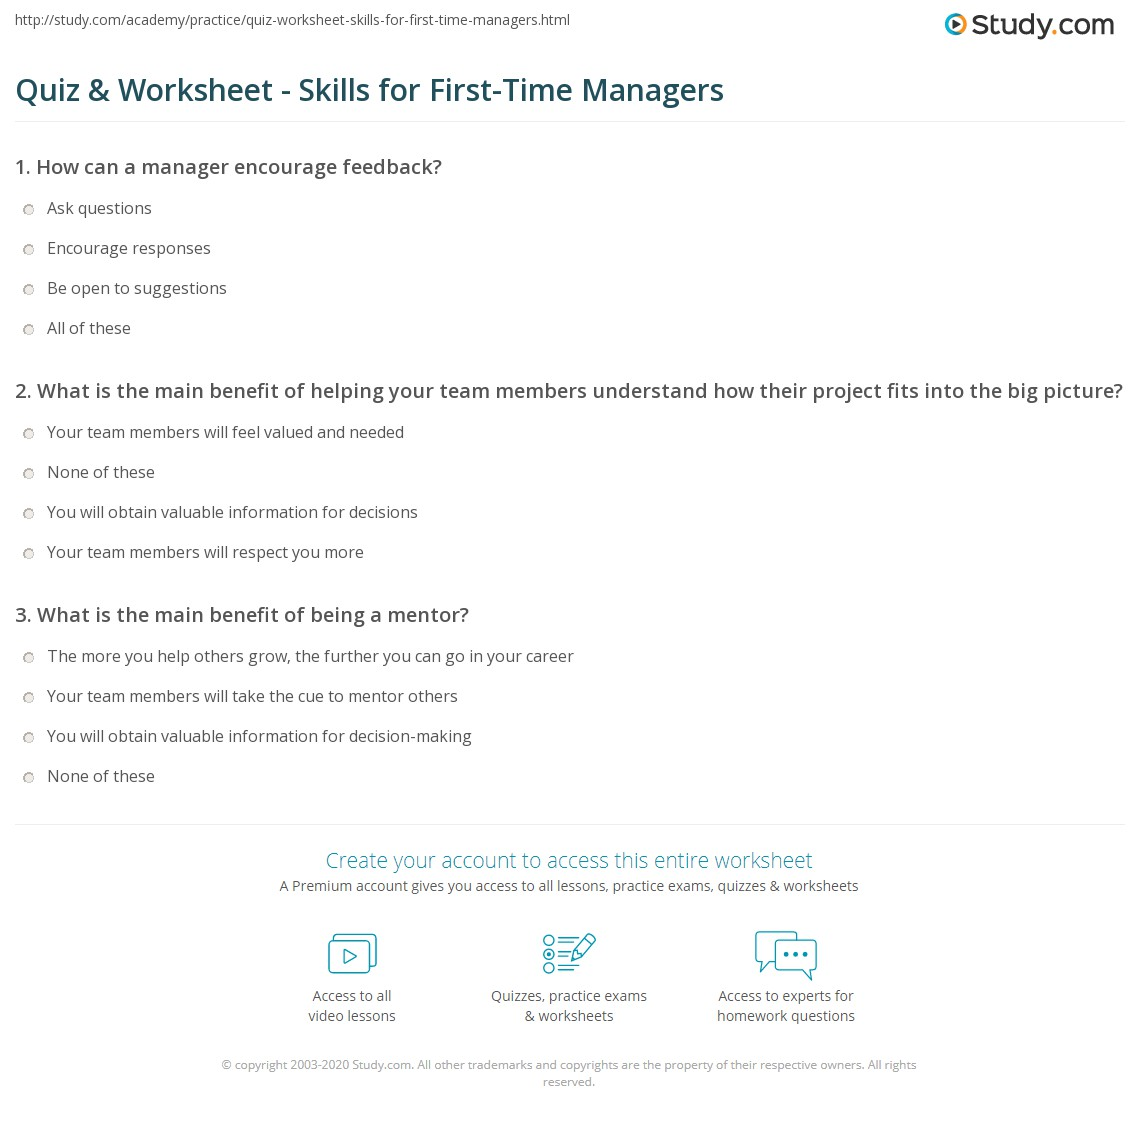 Quiz & Worksheet - Skills for First-Time Managers | Study com